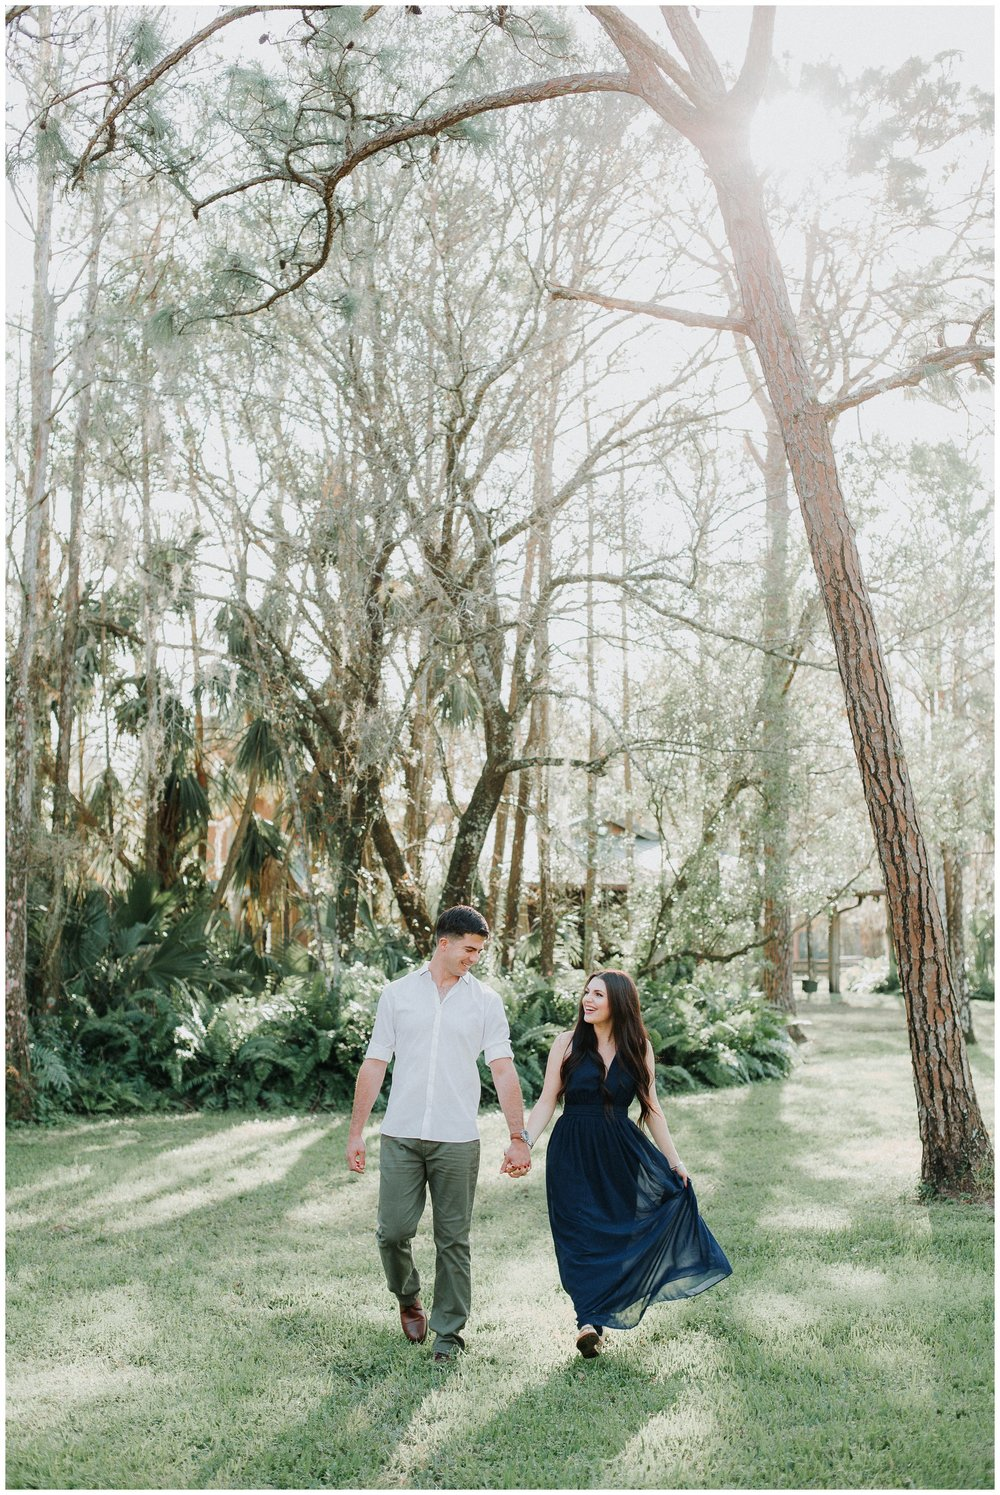 BMR Stables Wedding-BMR Stables Engagement Session-Jupiter Wedding Photographer-South Florida Wedding Photographer-Palm Beach Wedding Photographer-Jupiter Engagement Photos- Kimberly Smith Photography_0001.jpg